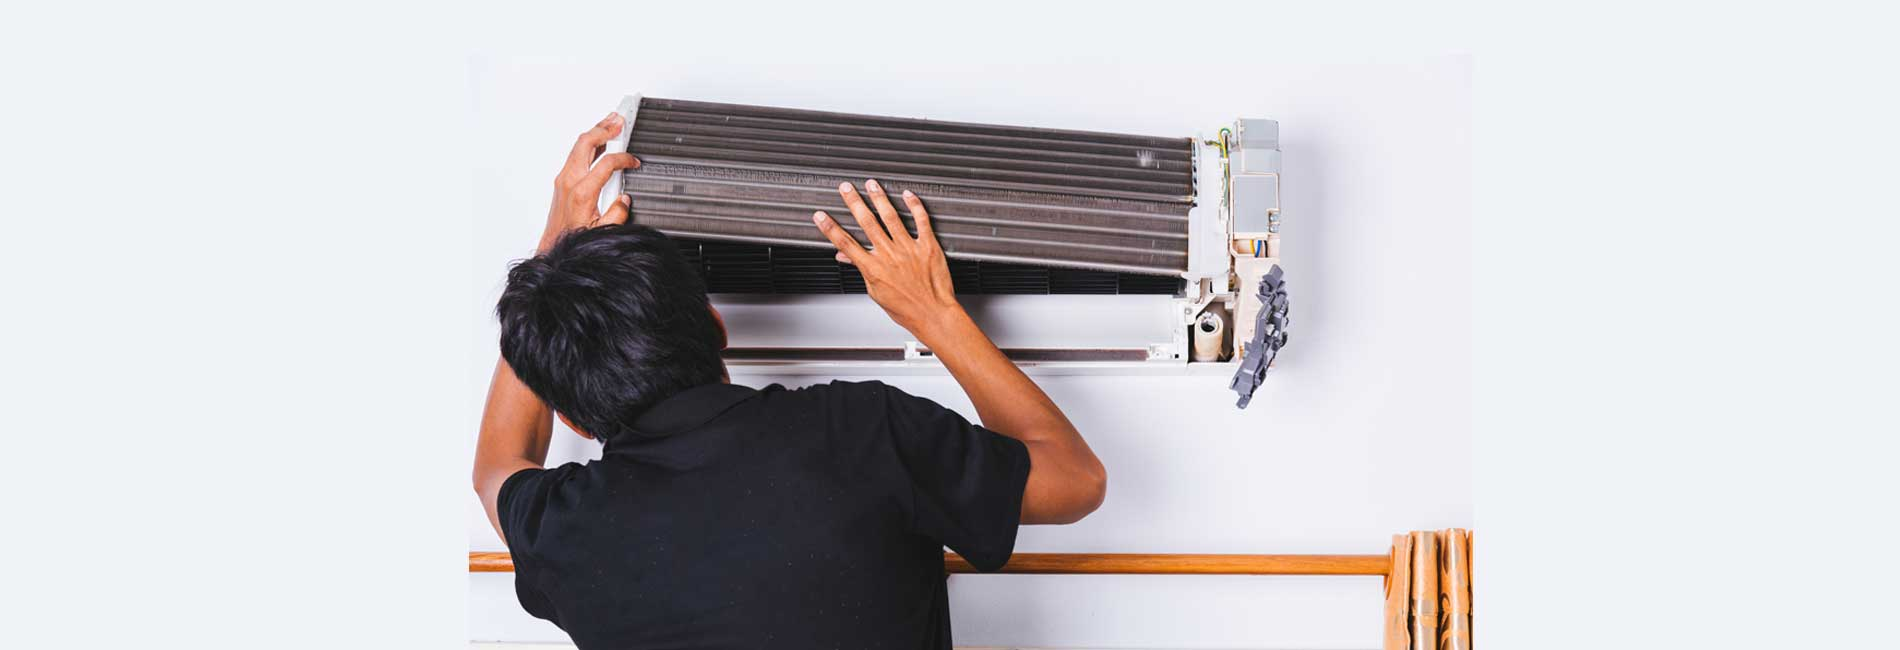 AC Repair in Valasaravakkam